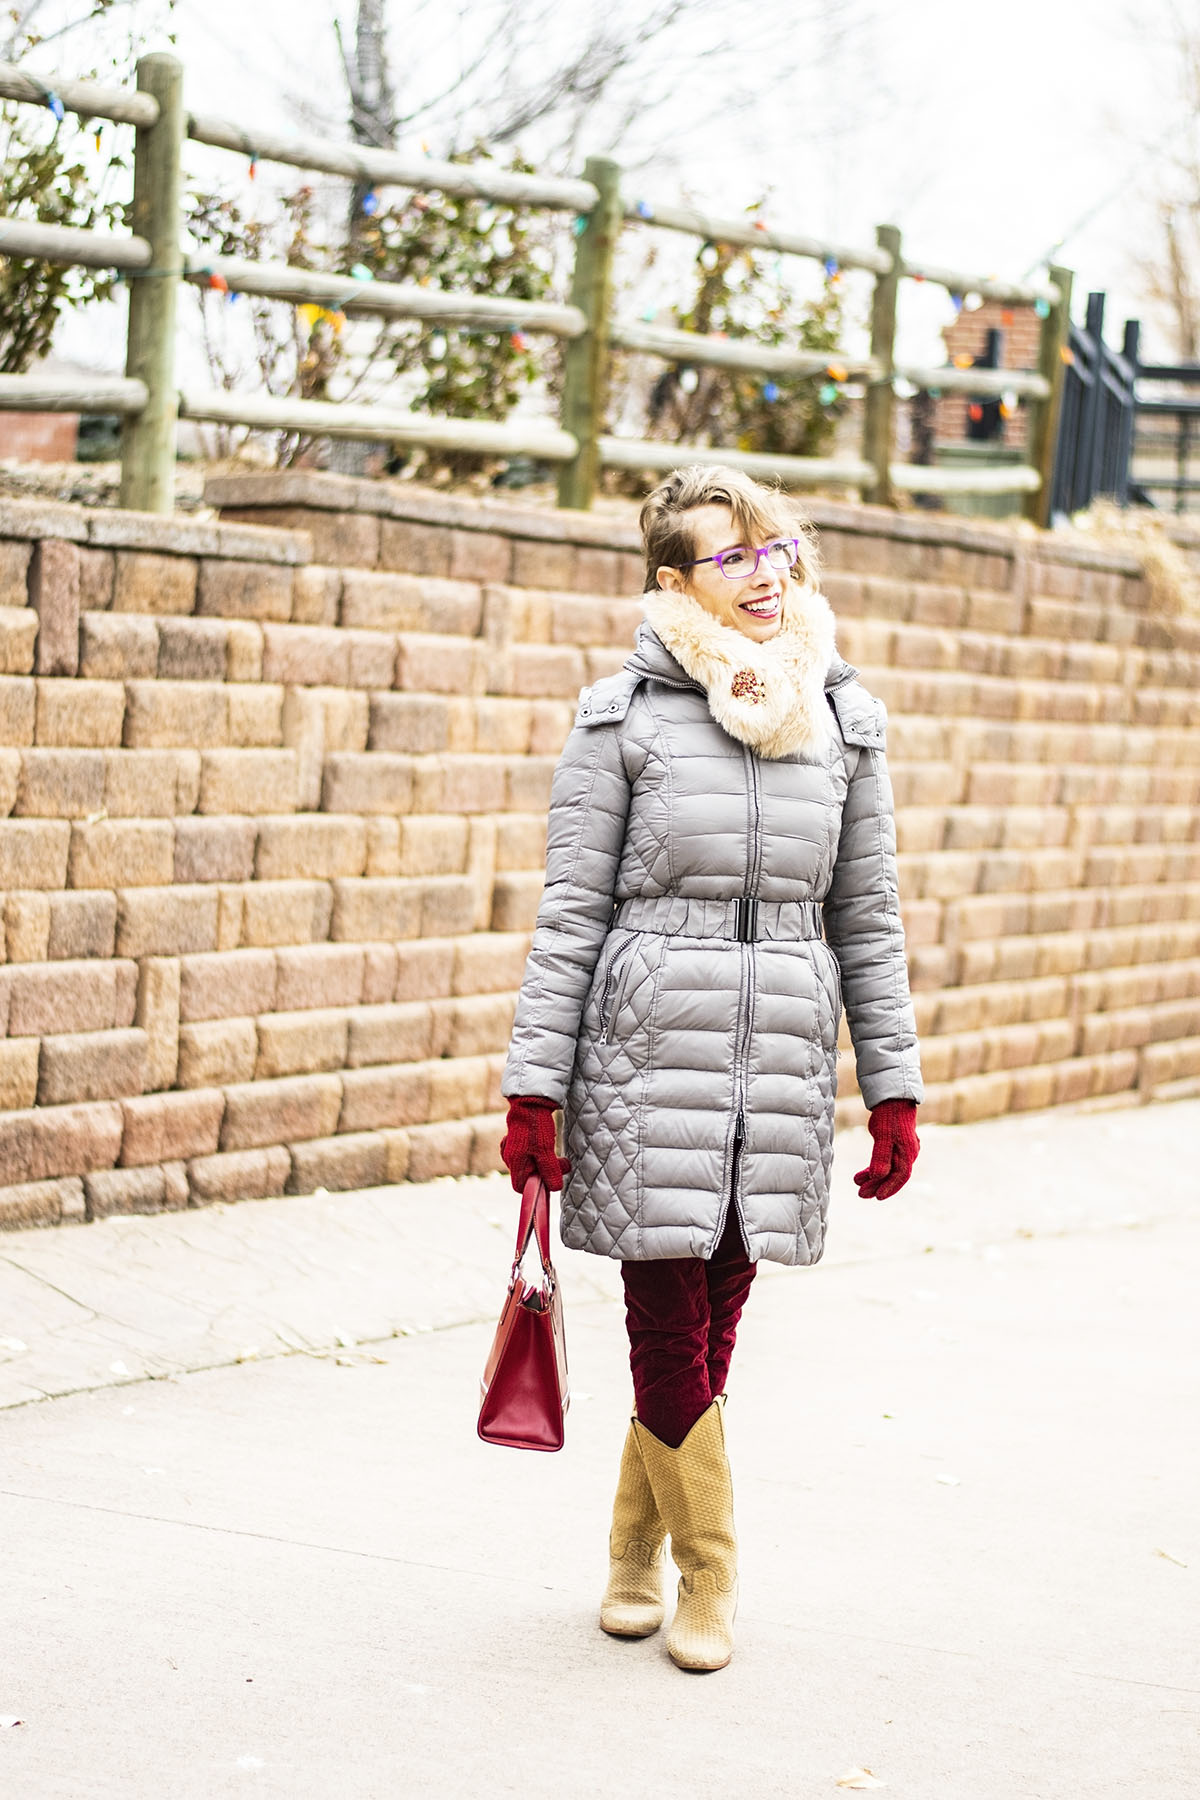 Women's Winter Coats on Sale | Beautiful Coats for Women 50+ | Woman wearing glasses in gray puffer coat with hoot. Also wearing red gloves